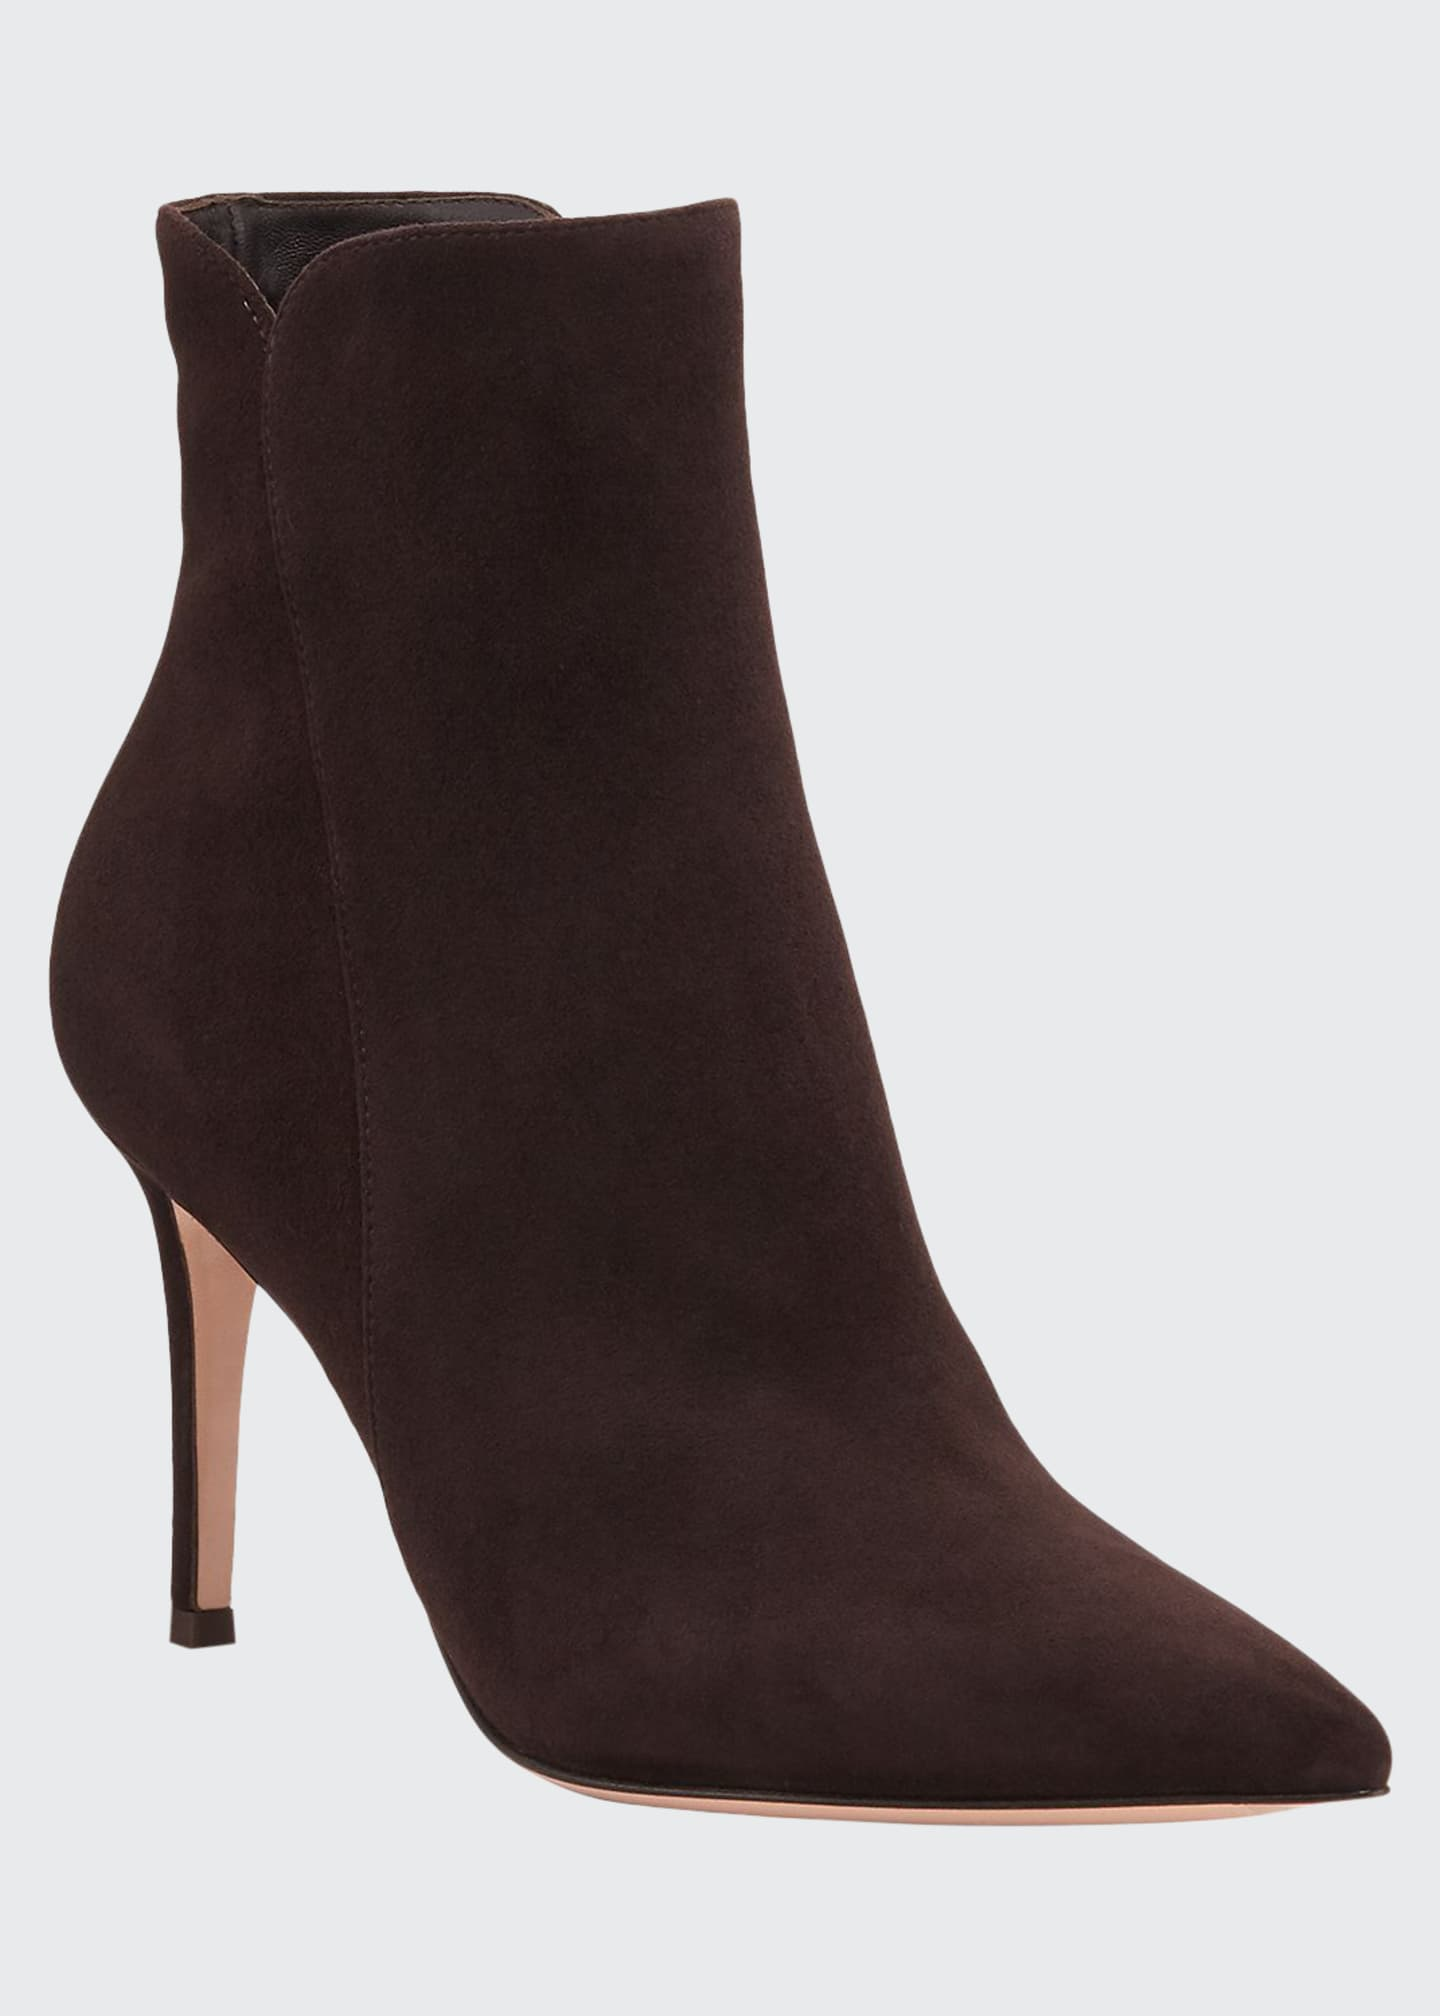 Levy Suede 85mm Point Toe Booties by Gianvito Rossi